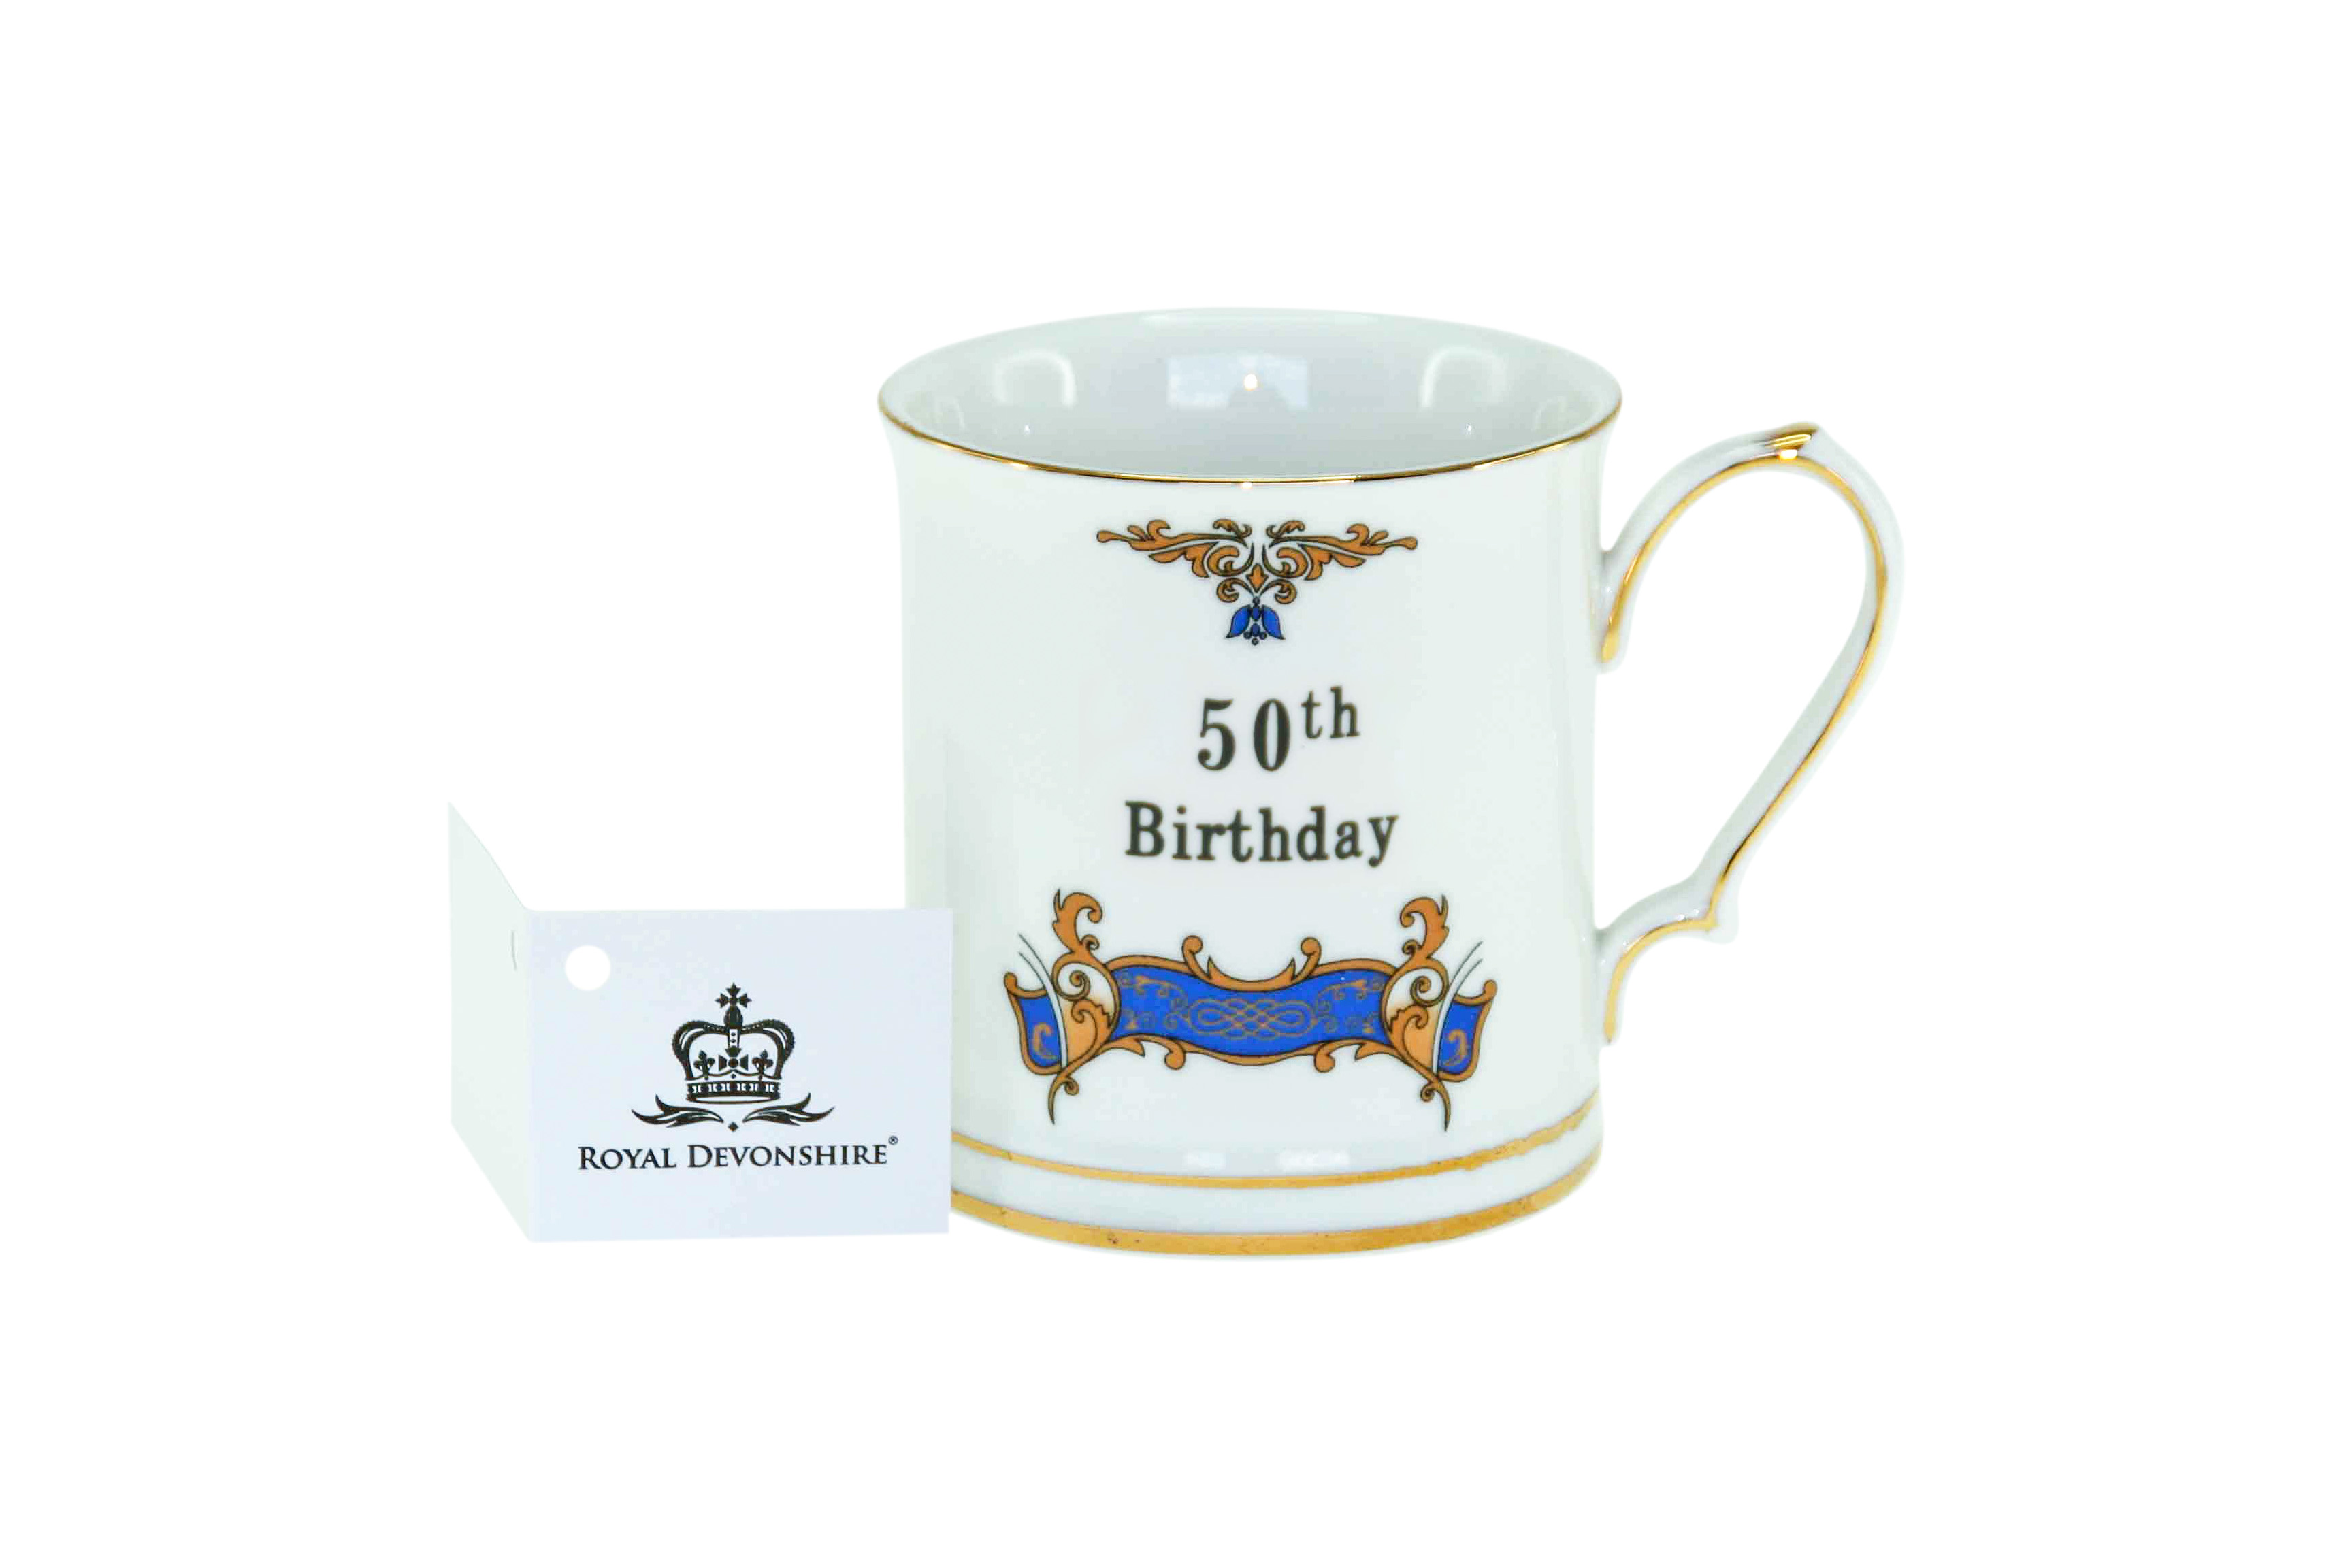 50th Birthday Tankard